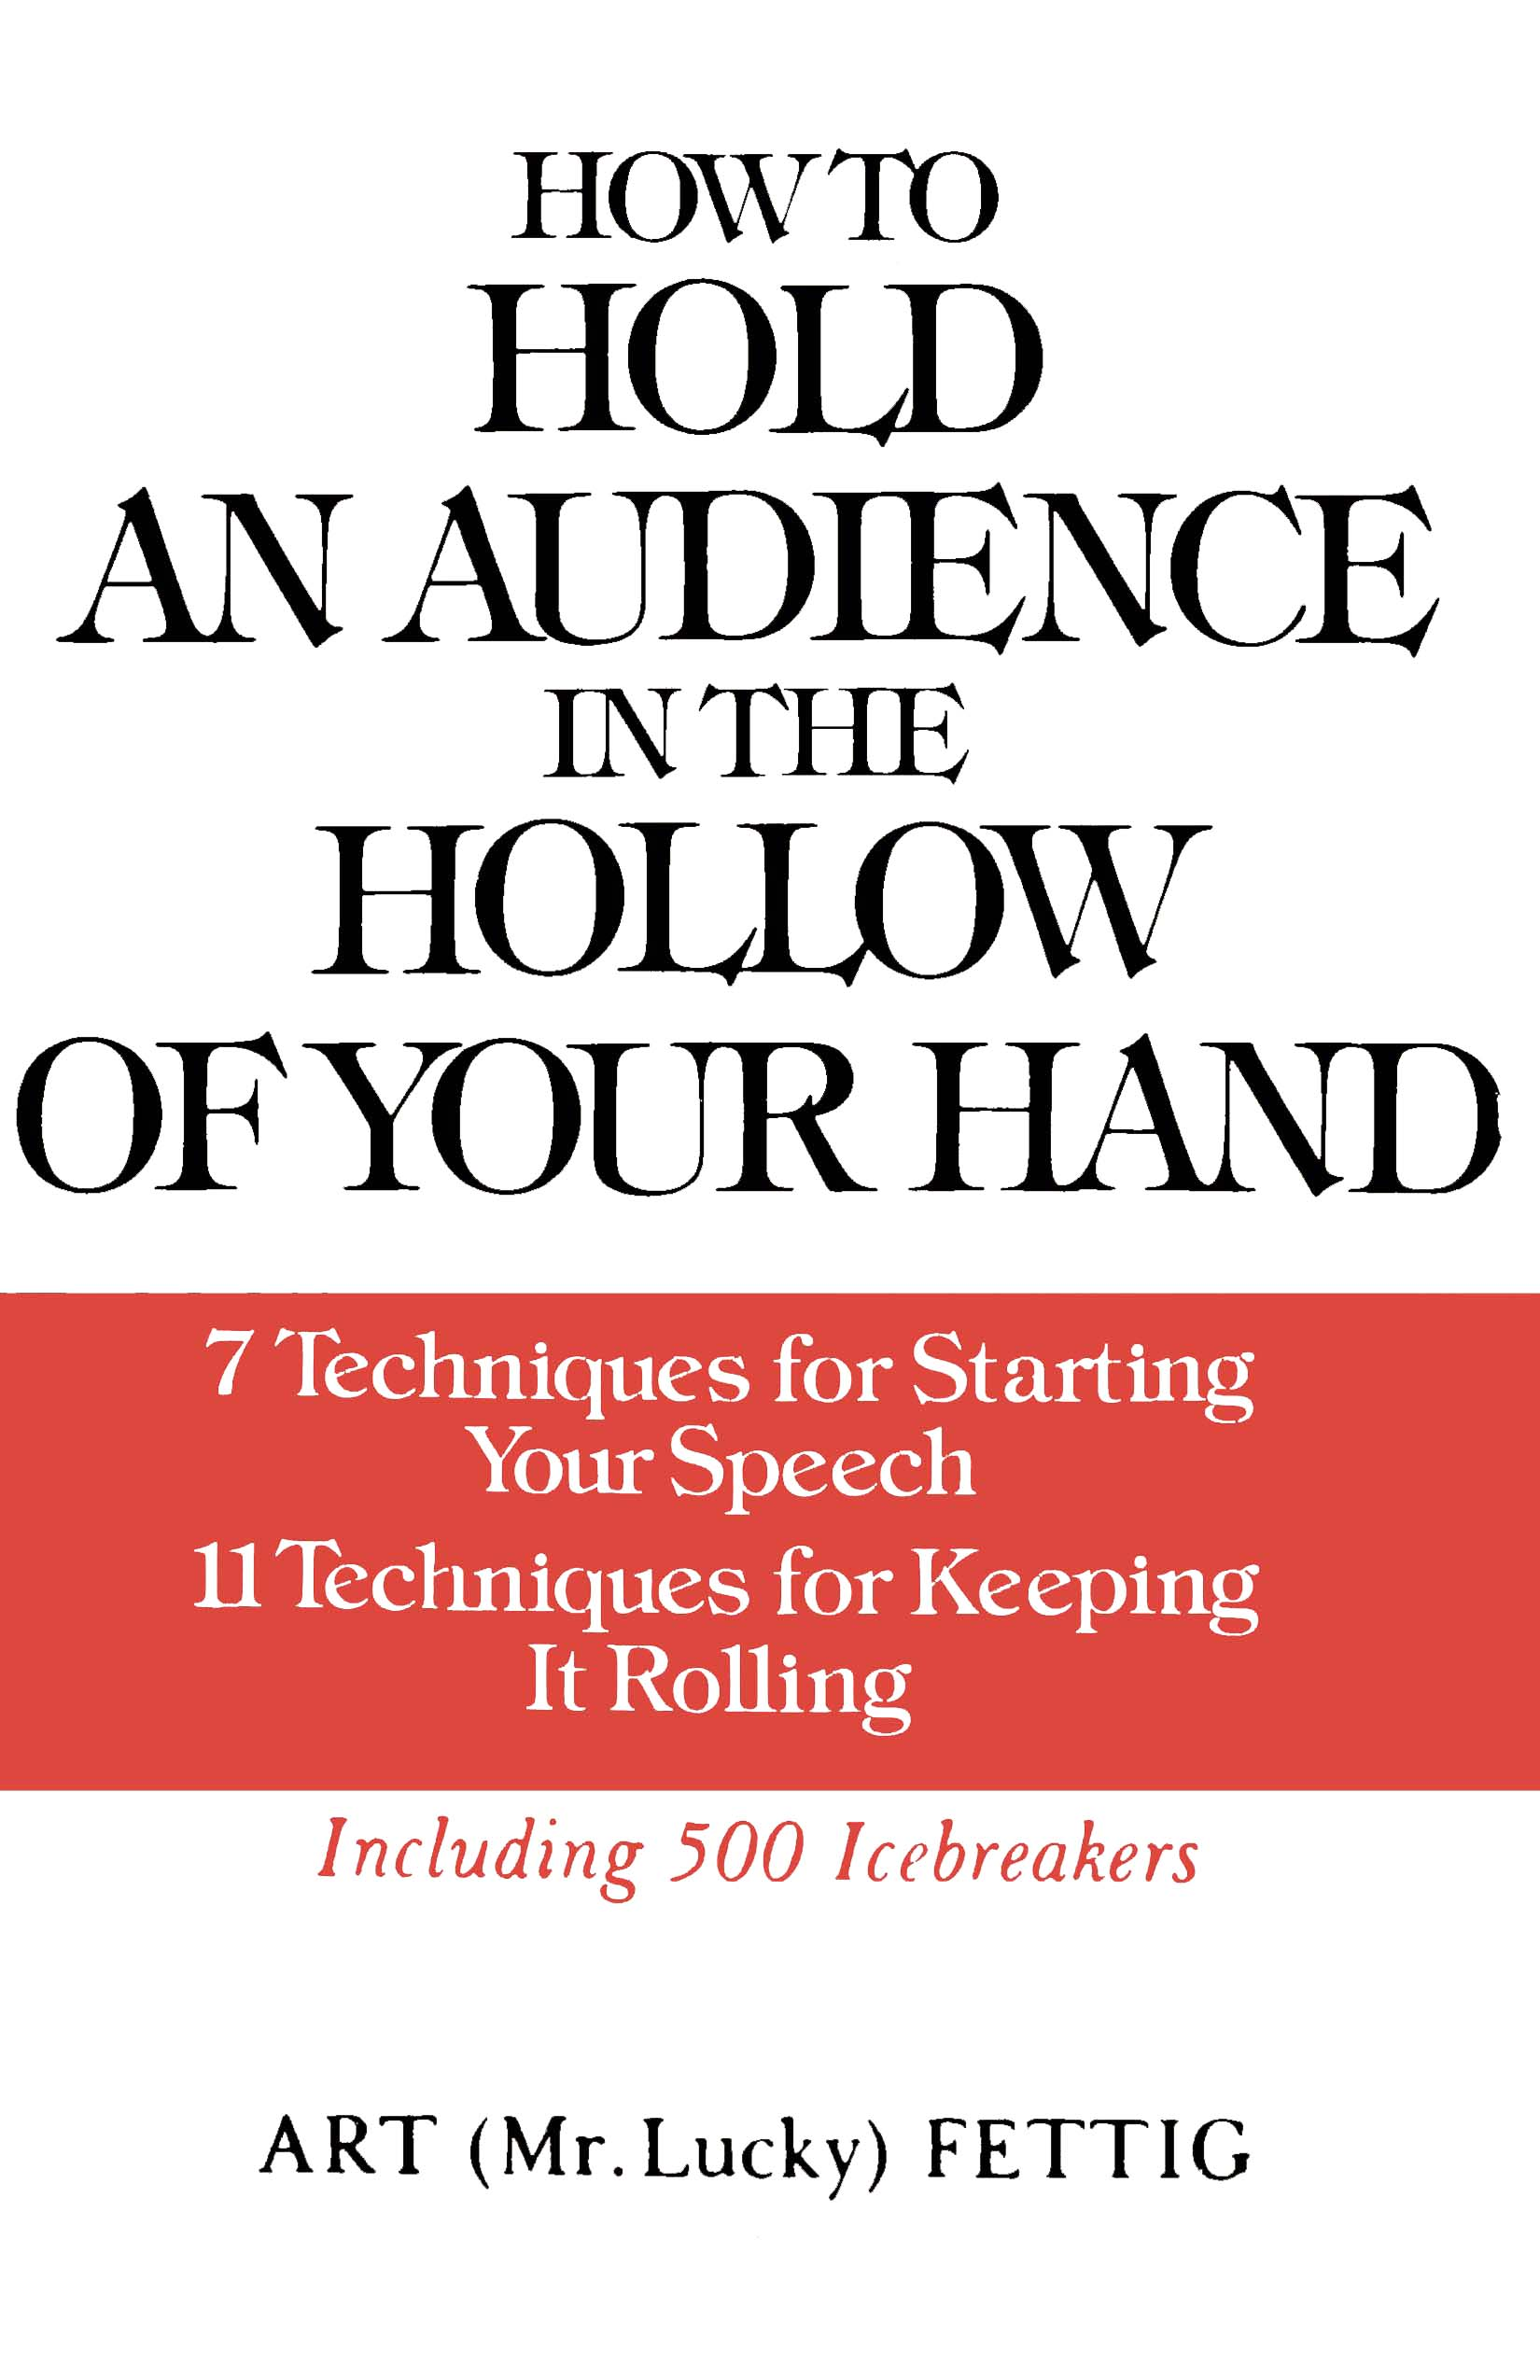 How to Hold an Audience in the Hollow of Your Hand: 7 Techniques for Starting Your Speech; 11 Techniques for Keeping It Rolling